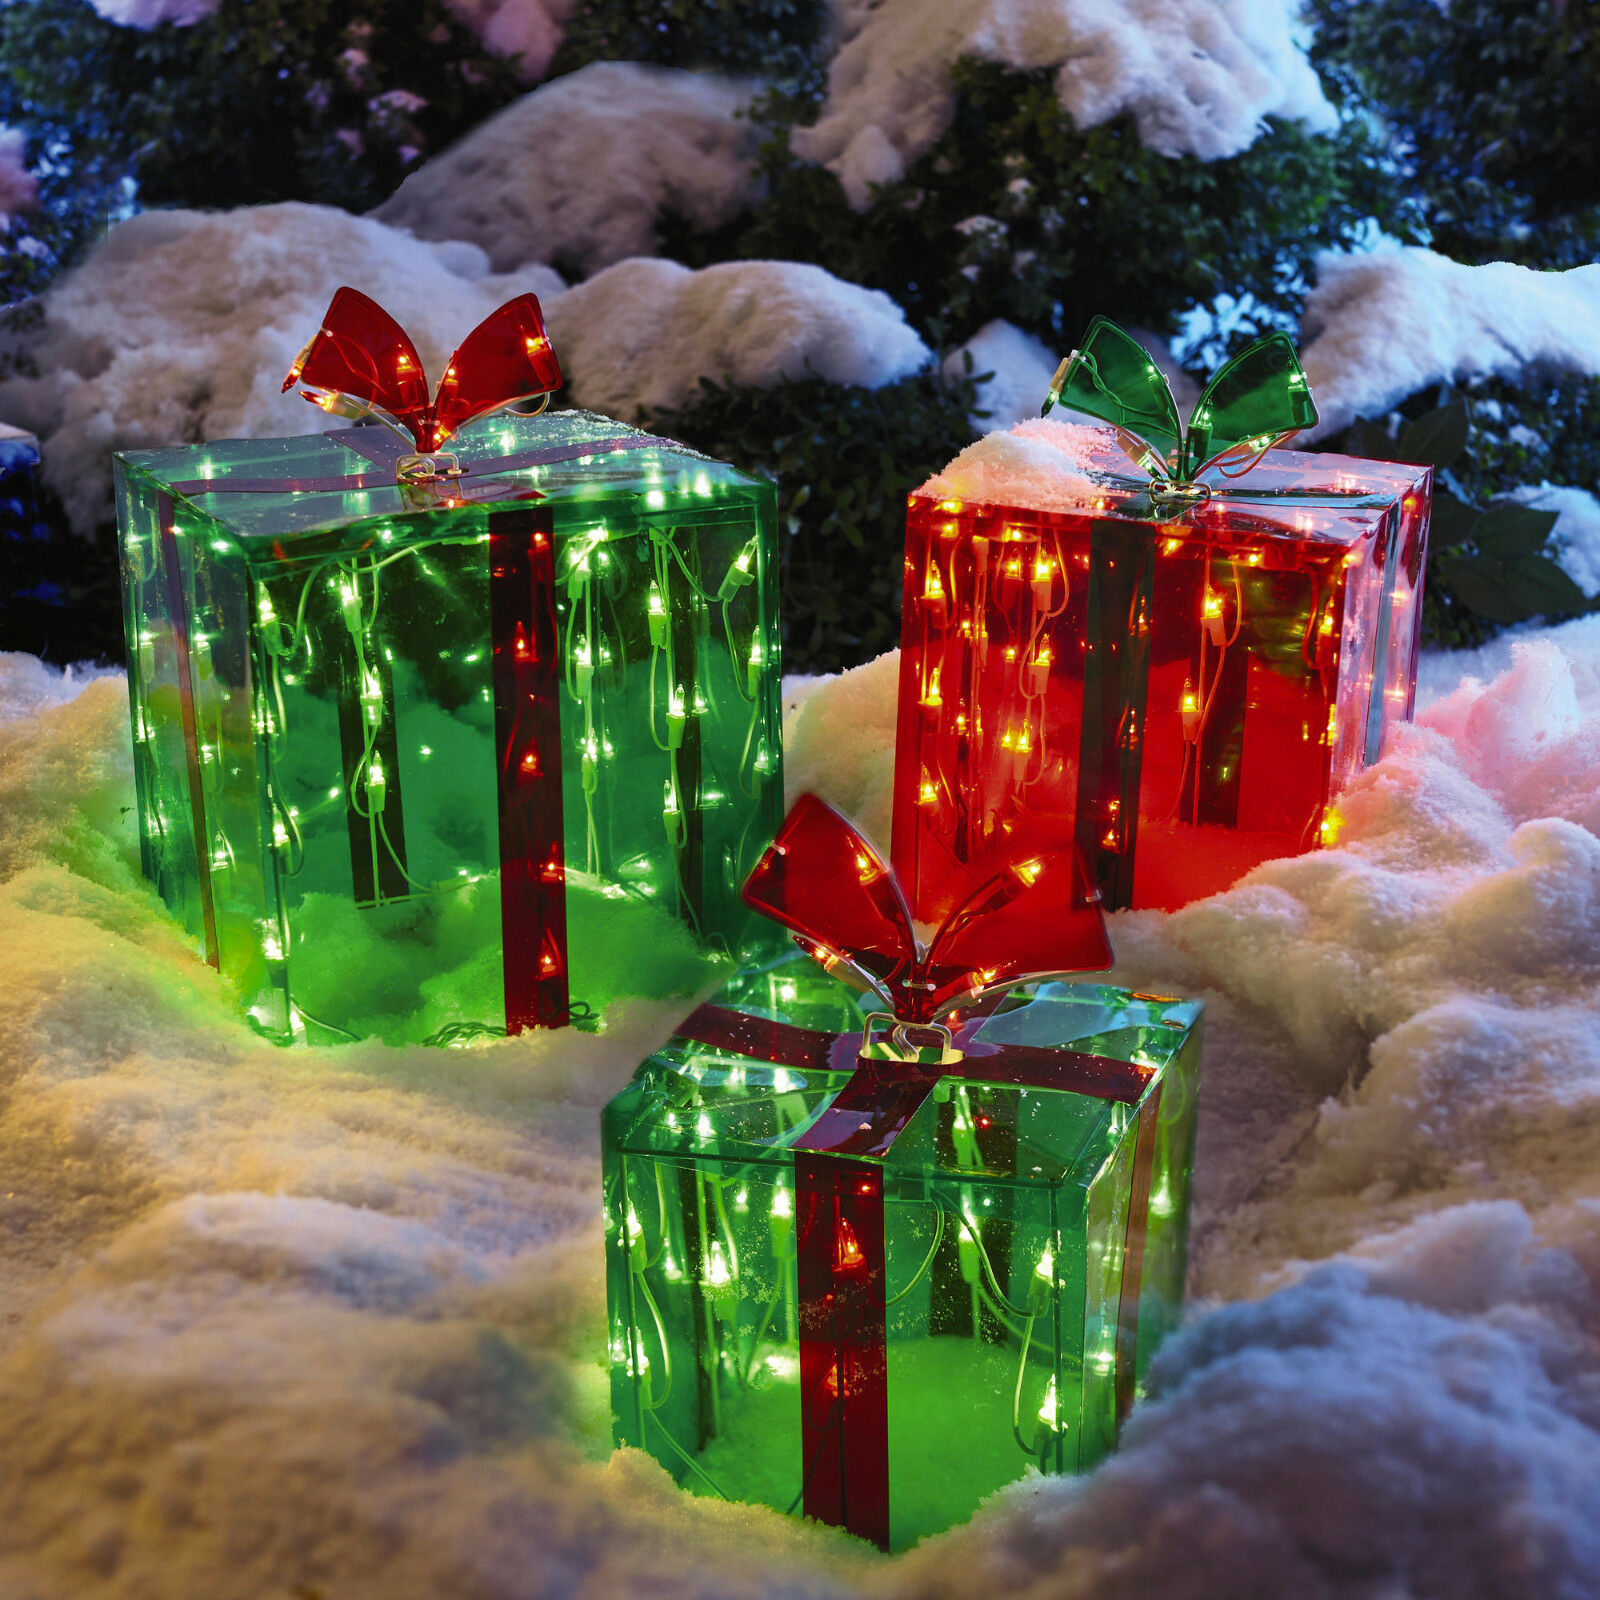 3 lighted gift boxes christmas decoration yard decor 150 lights indoor outdoor 1 of 3 see more